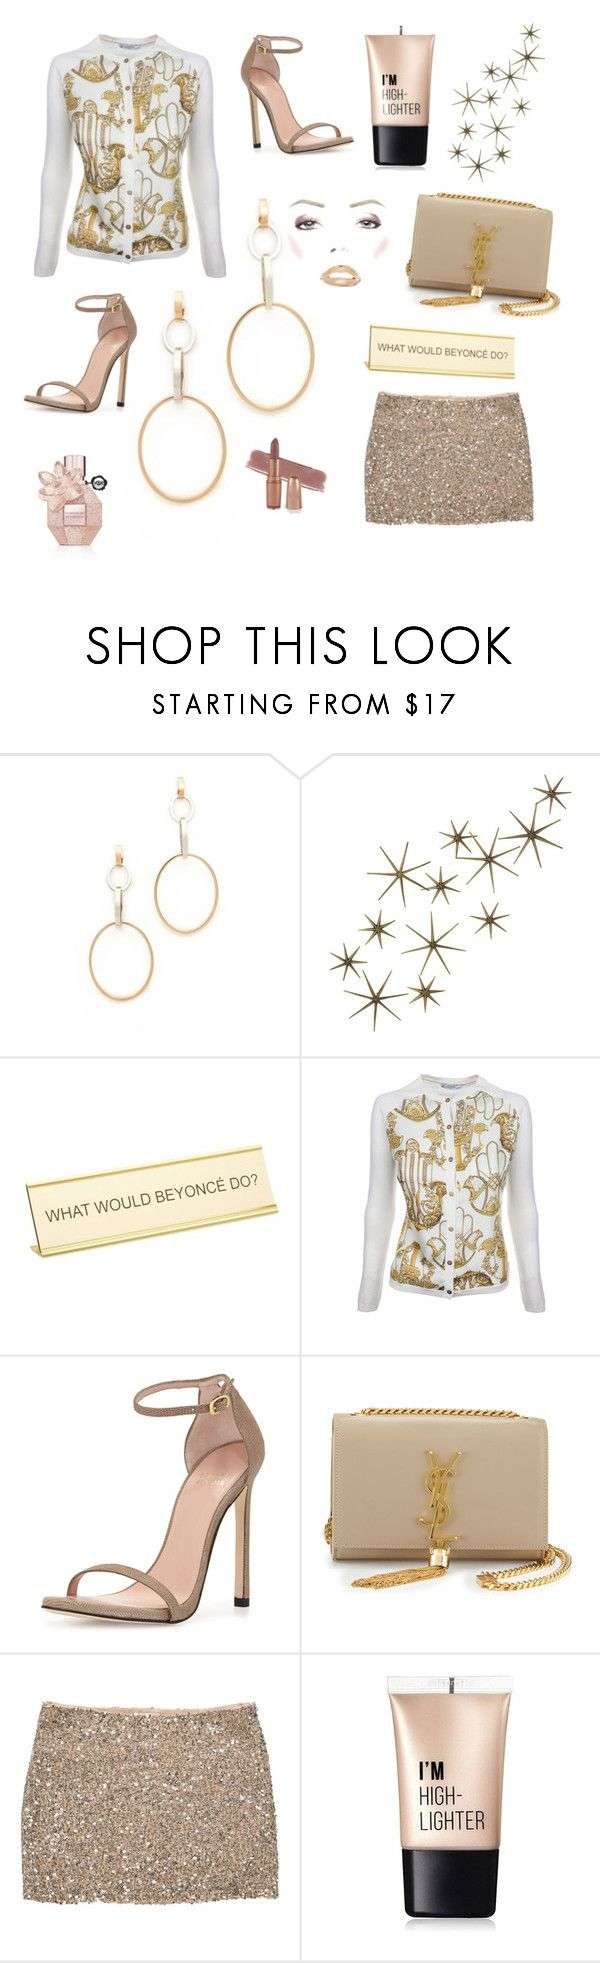 """Untitled #47"" by lilacgrace2 ❤ liked on Polyvore featuring Vita Fede, Global Views, He Said, She Said, Versace, Stuart Weitzman, Yves Saint Laurent, Haute Hippie and Charlotte Russe"